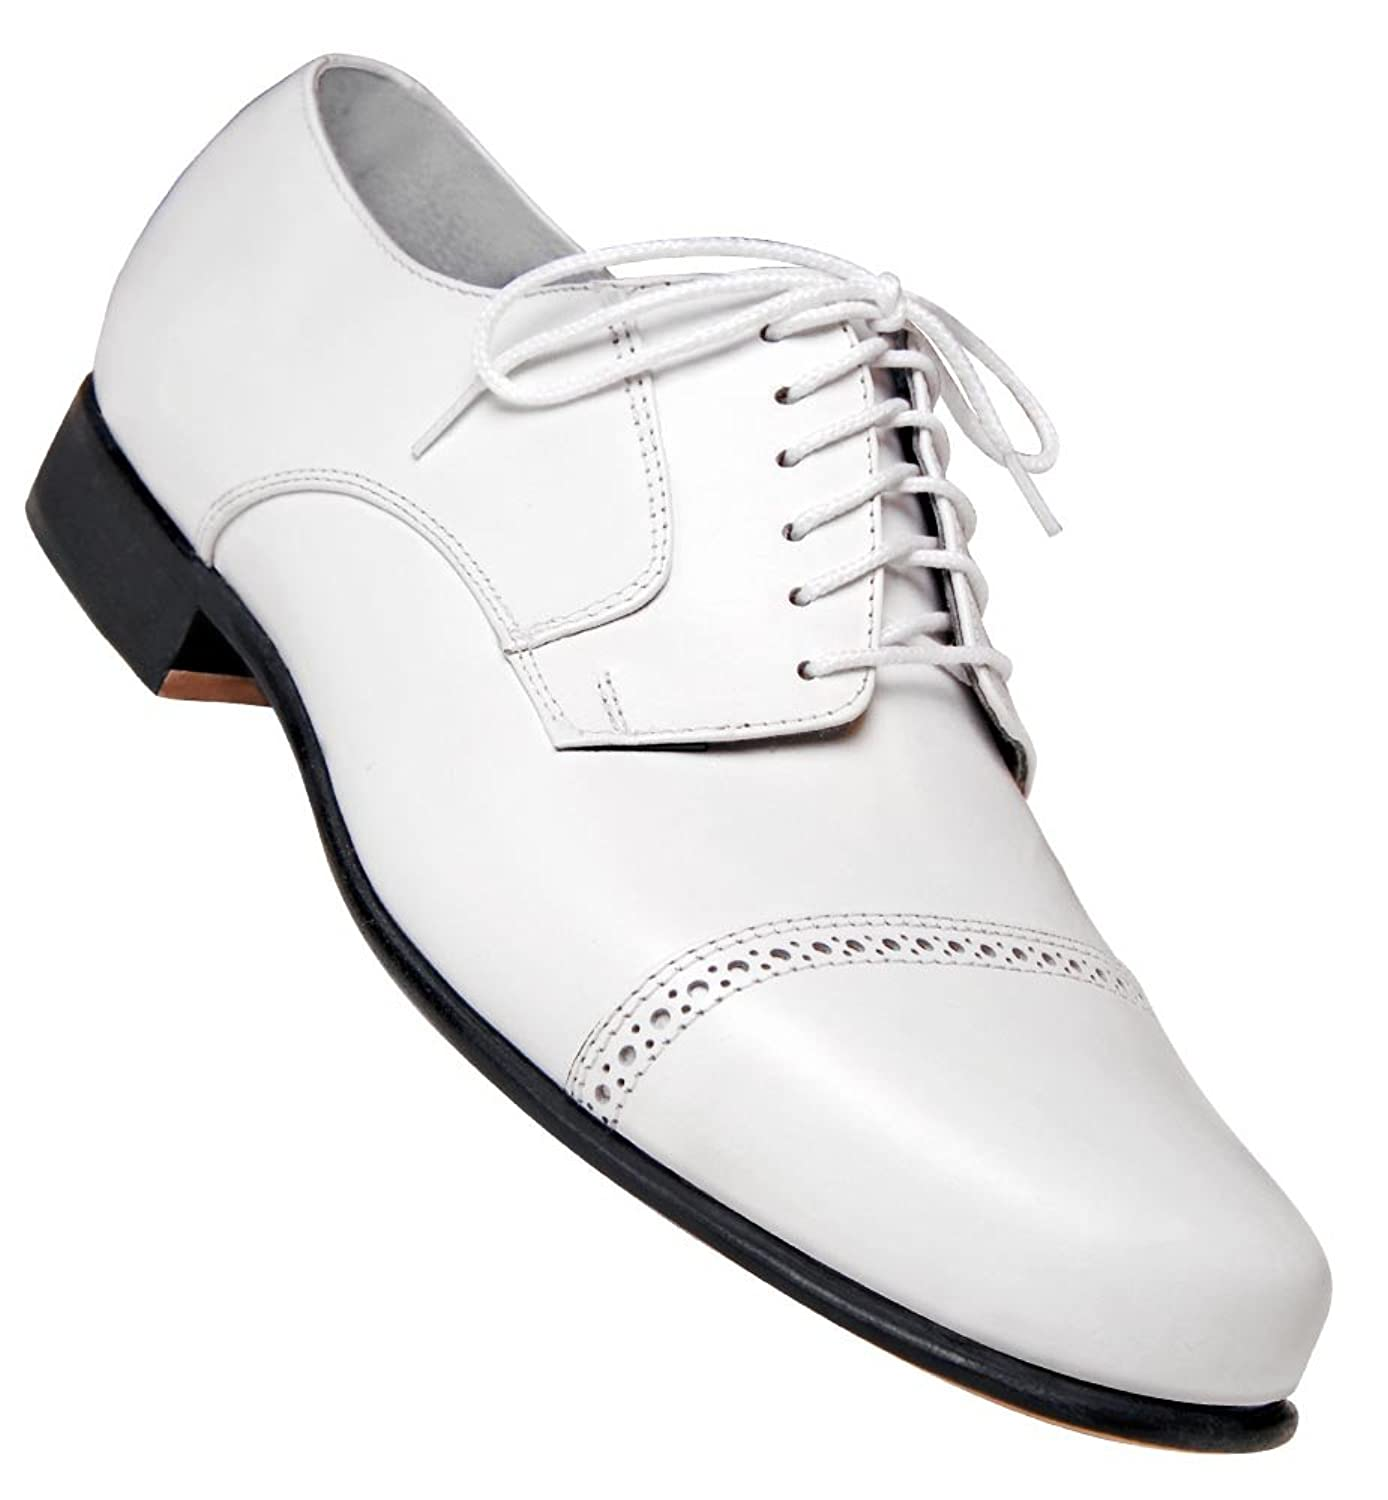 1950s Style Mens Shoes Mens 1930s White Captoe Dance Shoe $74.95 AT vintagedancer.com